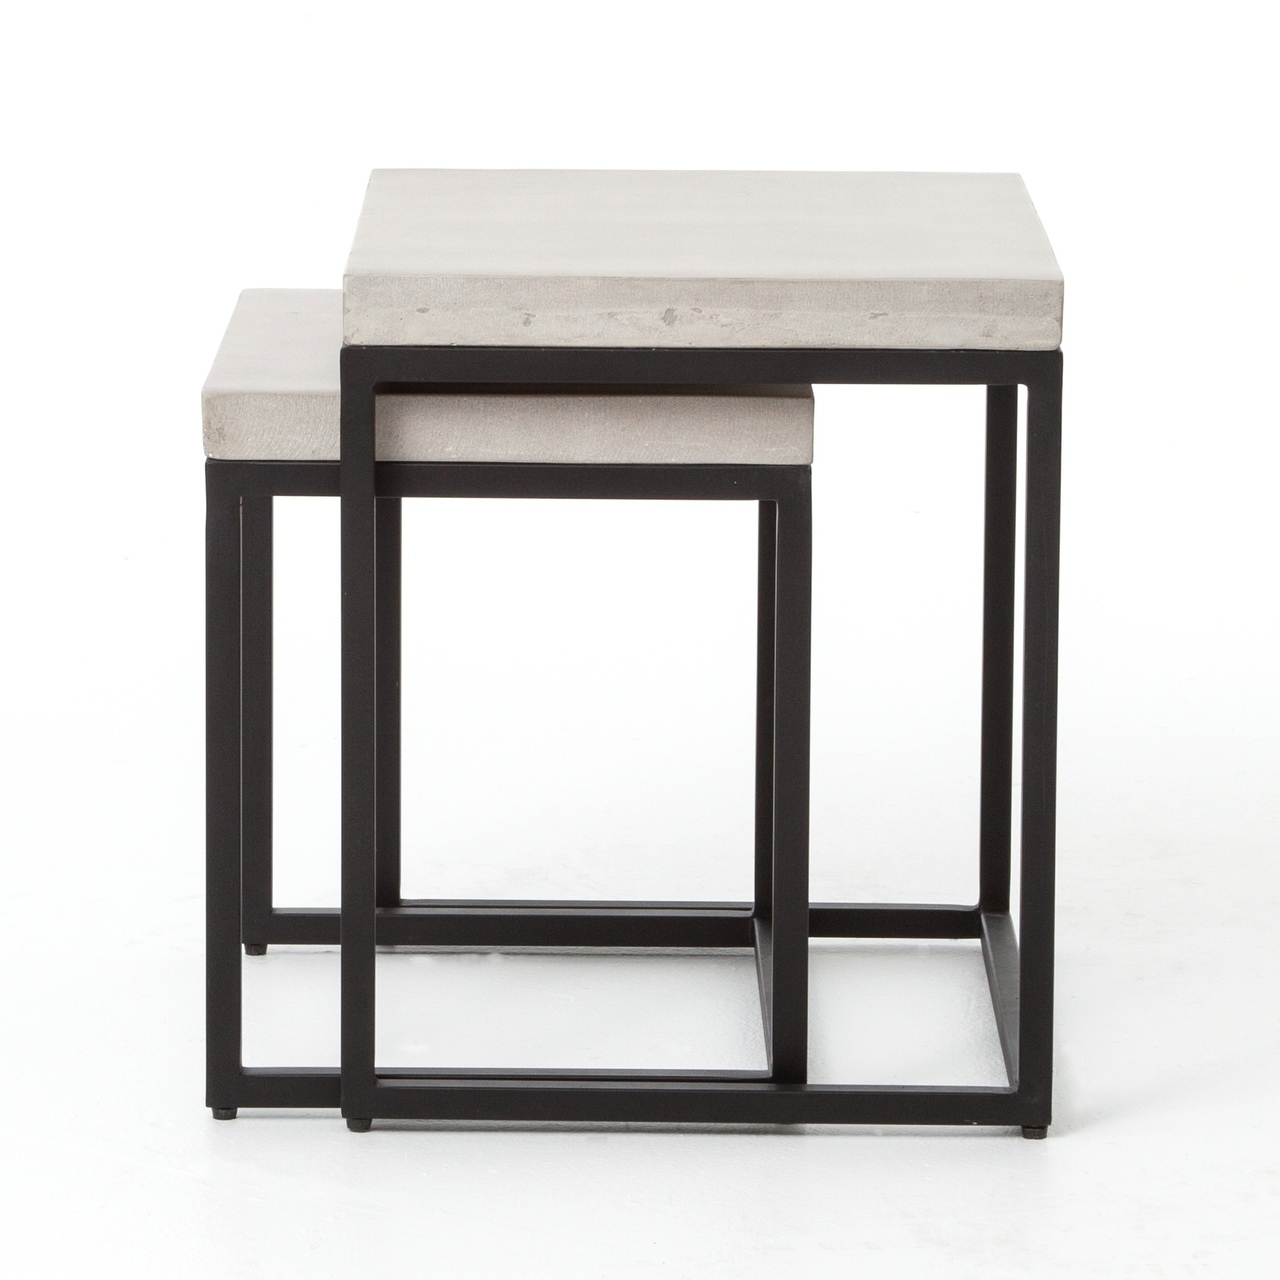 maximus indoor outdoor nesting side tables natural concrete vcns sid table cover design new vintage furniture gray trestle dining gold white pedestal room mosaic round resin patio